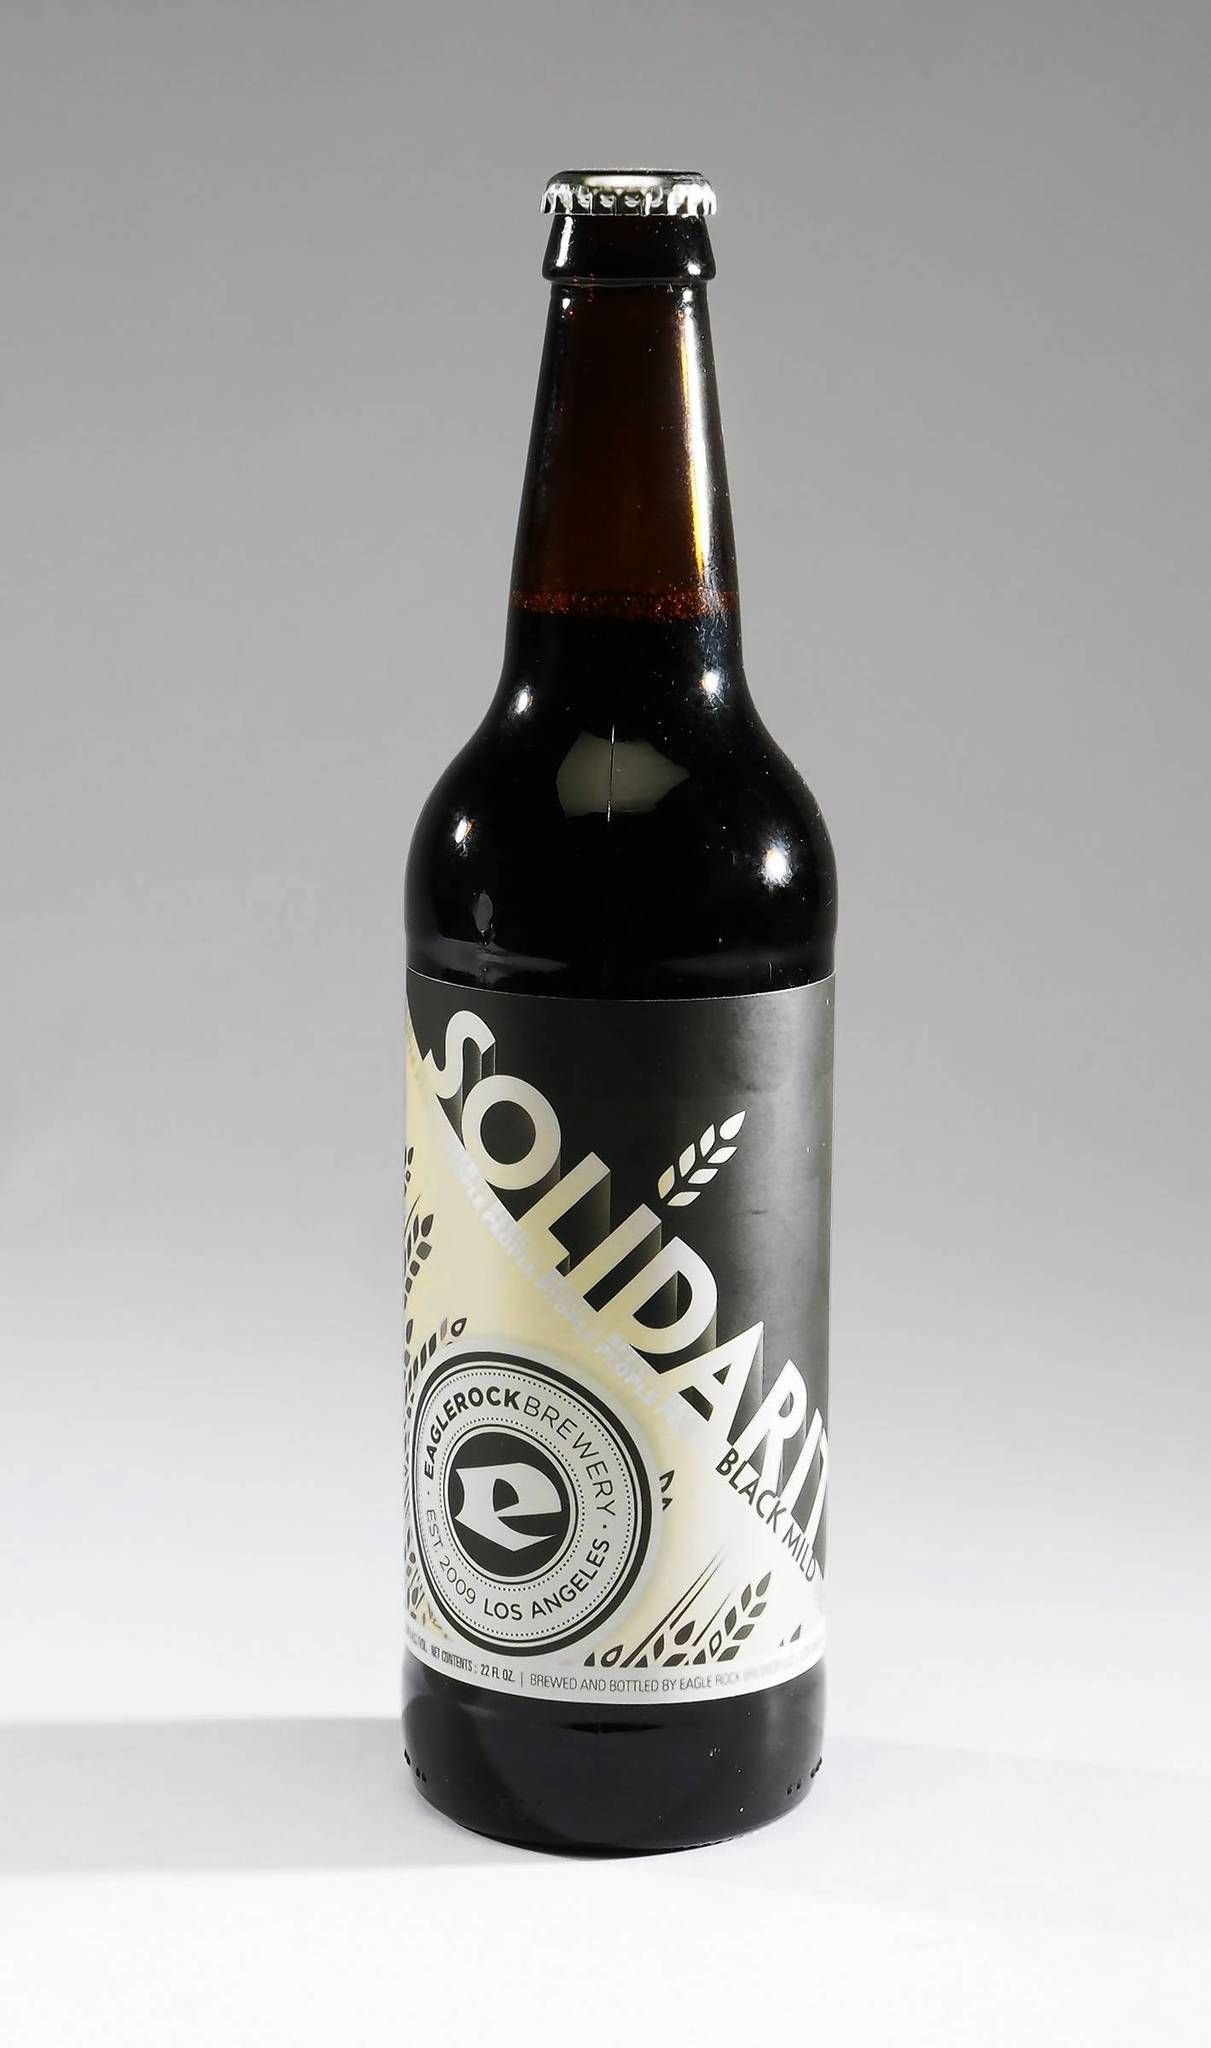 Eagle Rock Breweryx{2019}s Solidarity Black Mild Ale.